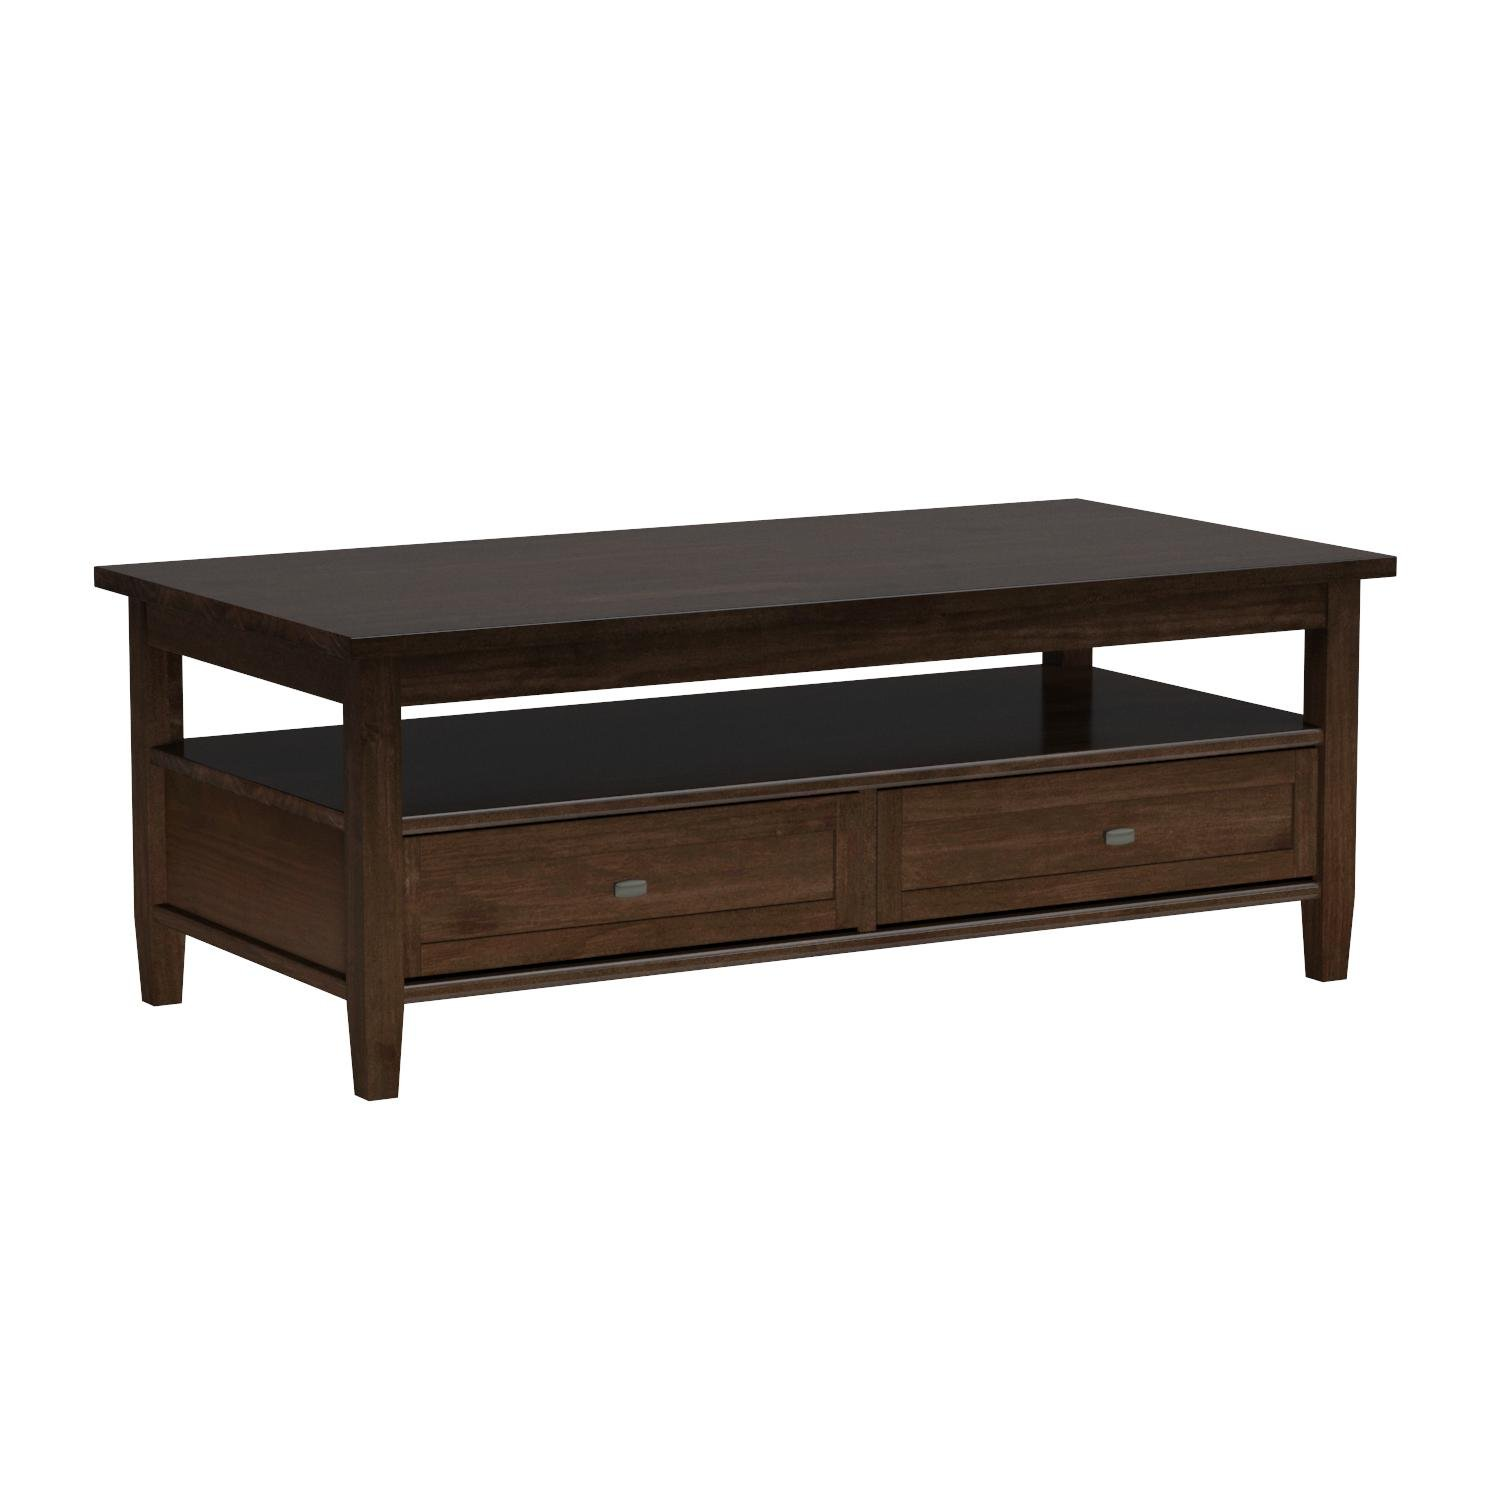 Simpli Home Warm Shaker Solid Wood Coffee Table, Tobacco Brown by Simpli Home (Image #7)